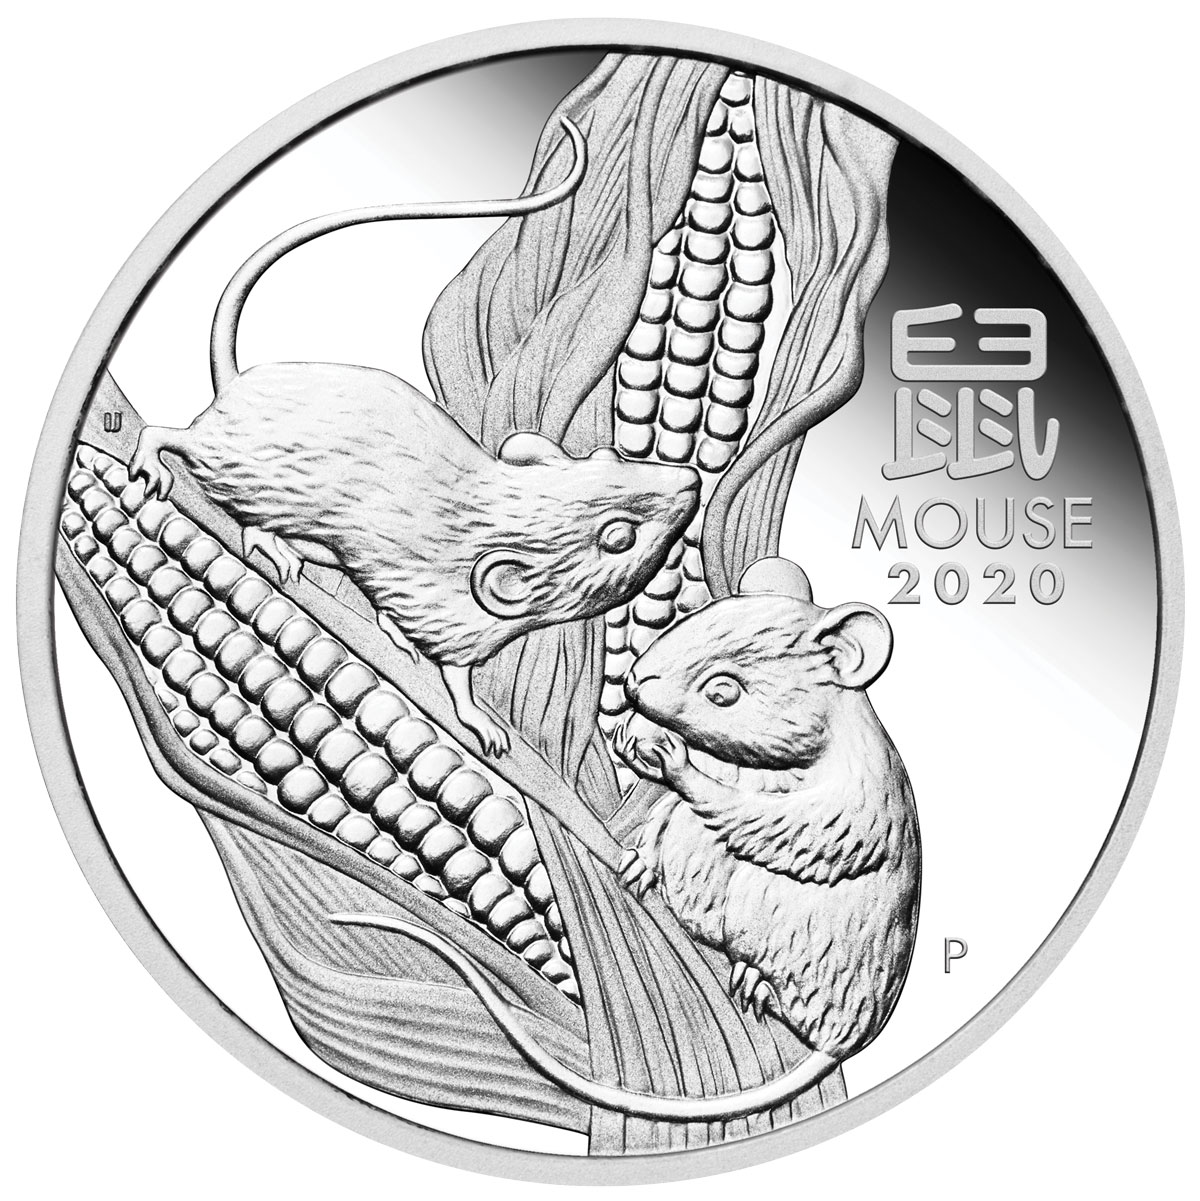 2020-P Australia Year of the Mouse - Lunar Series III 1 oz Silver Proof $1 Coin GEM Proof